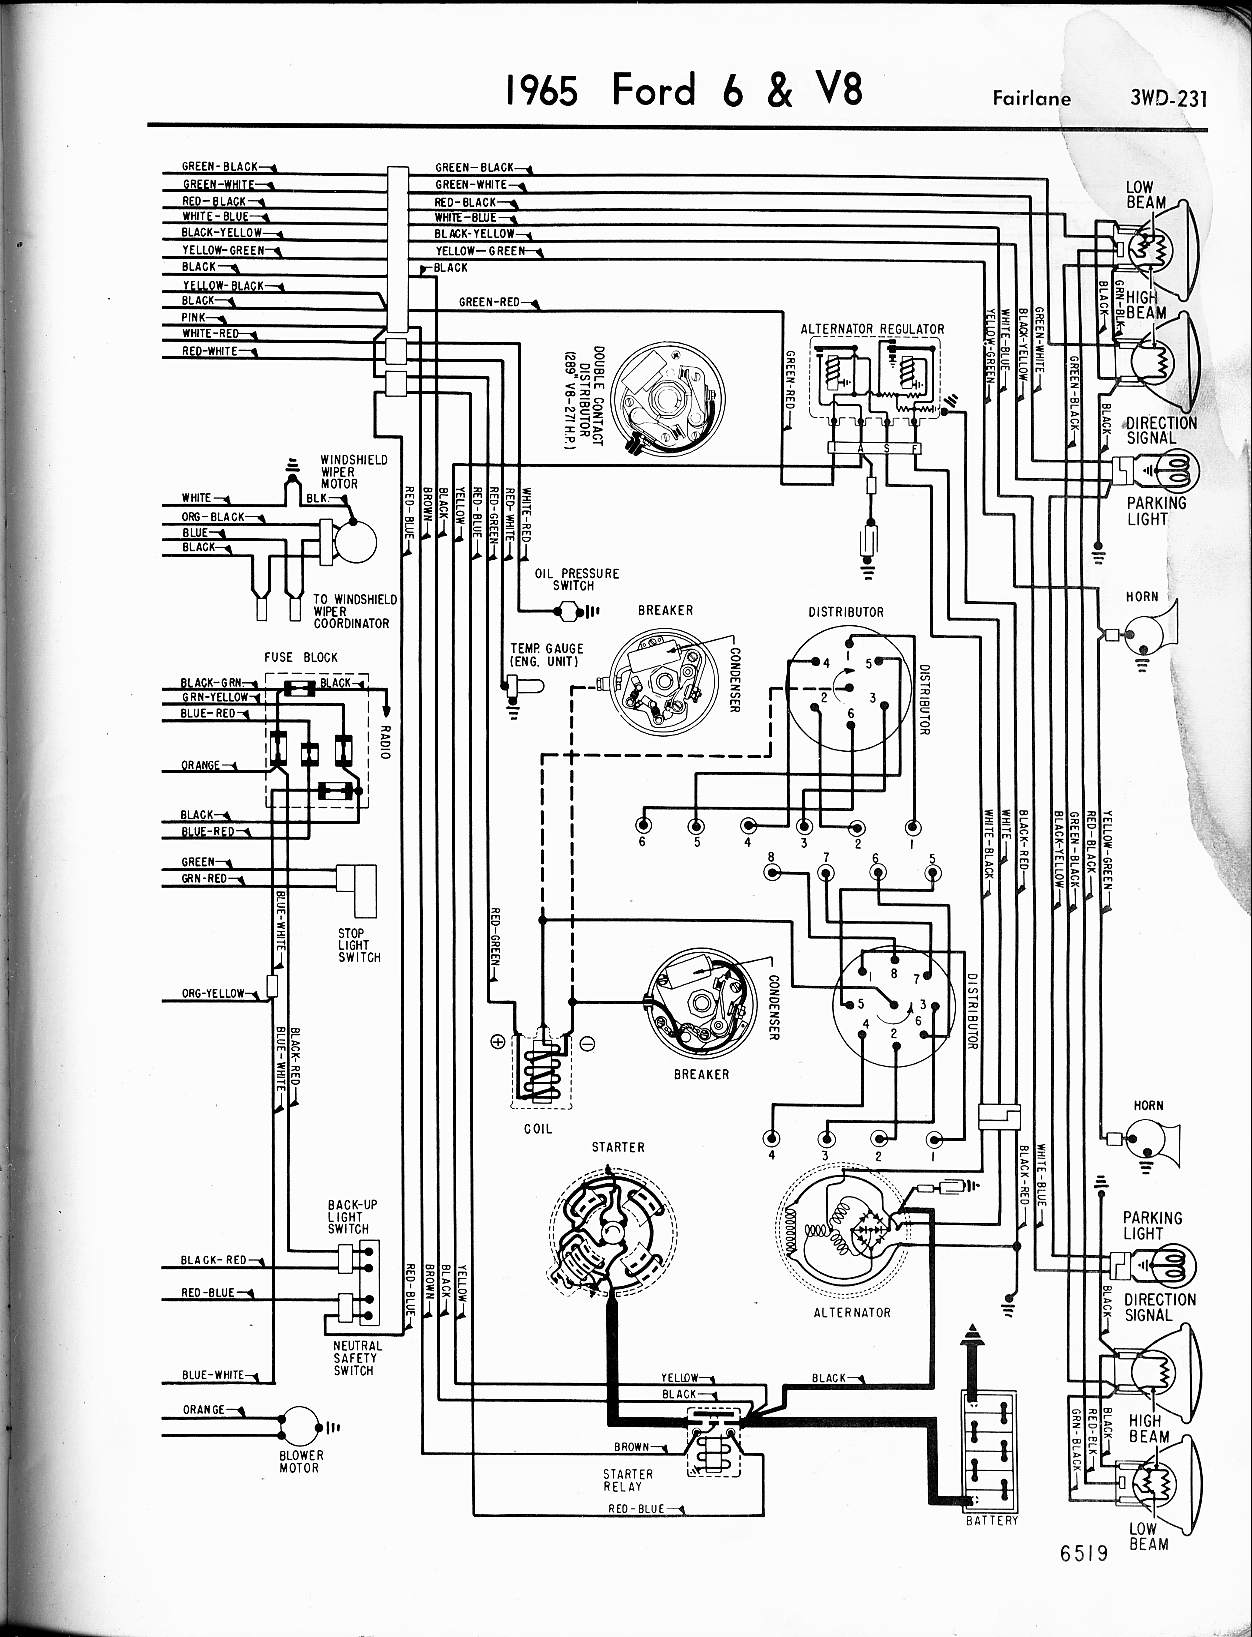 Electrical Wiring Diagrams For Air Conditioning likewise 1967 Mustang Wiring And Vacuum Diagrams additionally Grant Oil Boiler Wiring Diagram in addition Fordindex likewise Vw Vr6 Engine Wiring Diagram. on 6 wire thermostat diagram